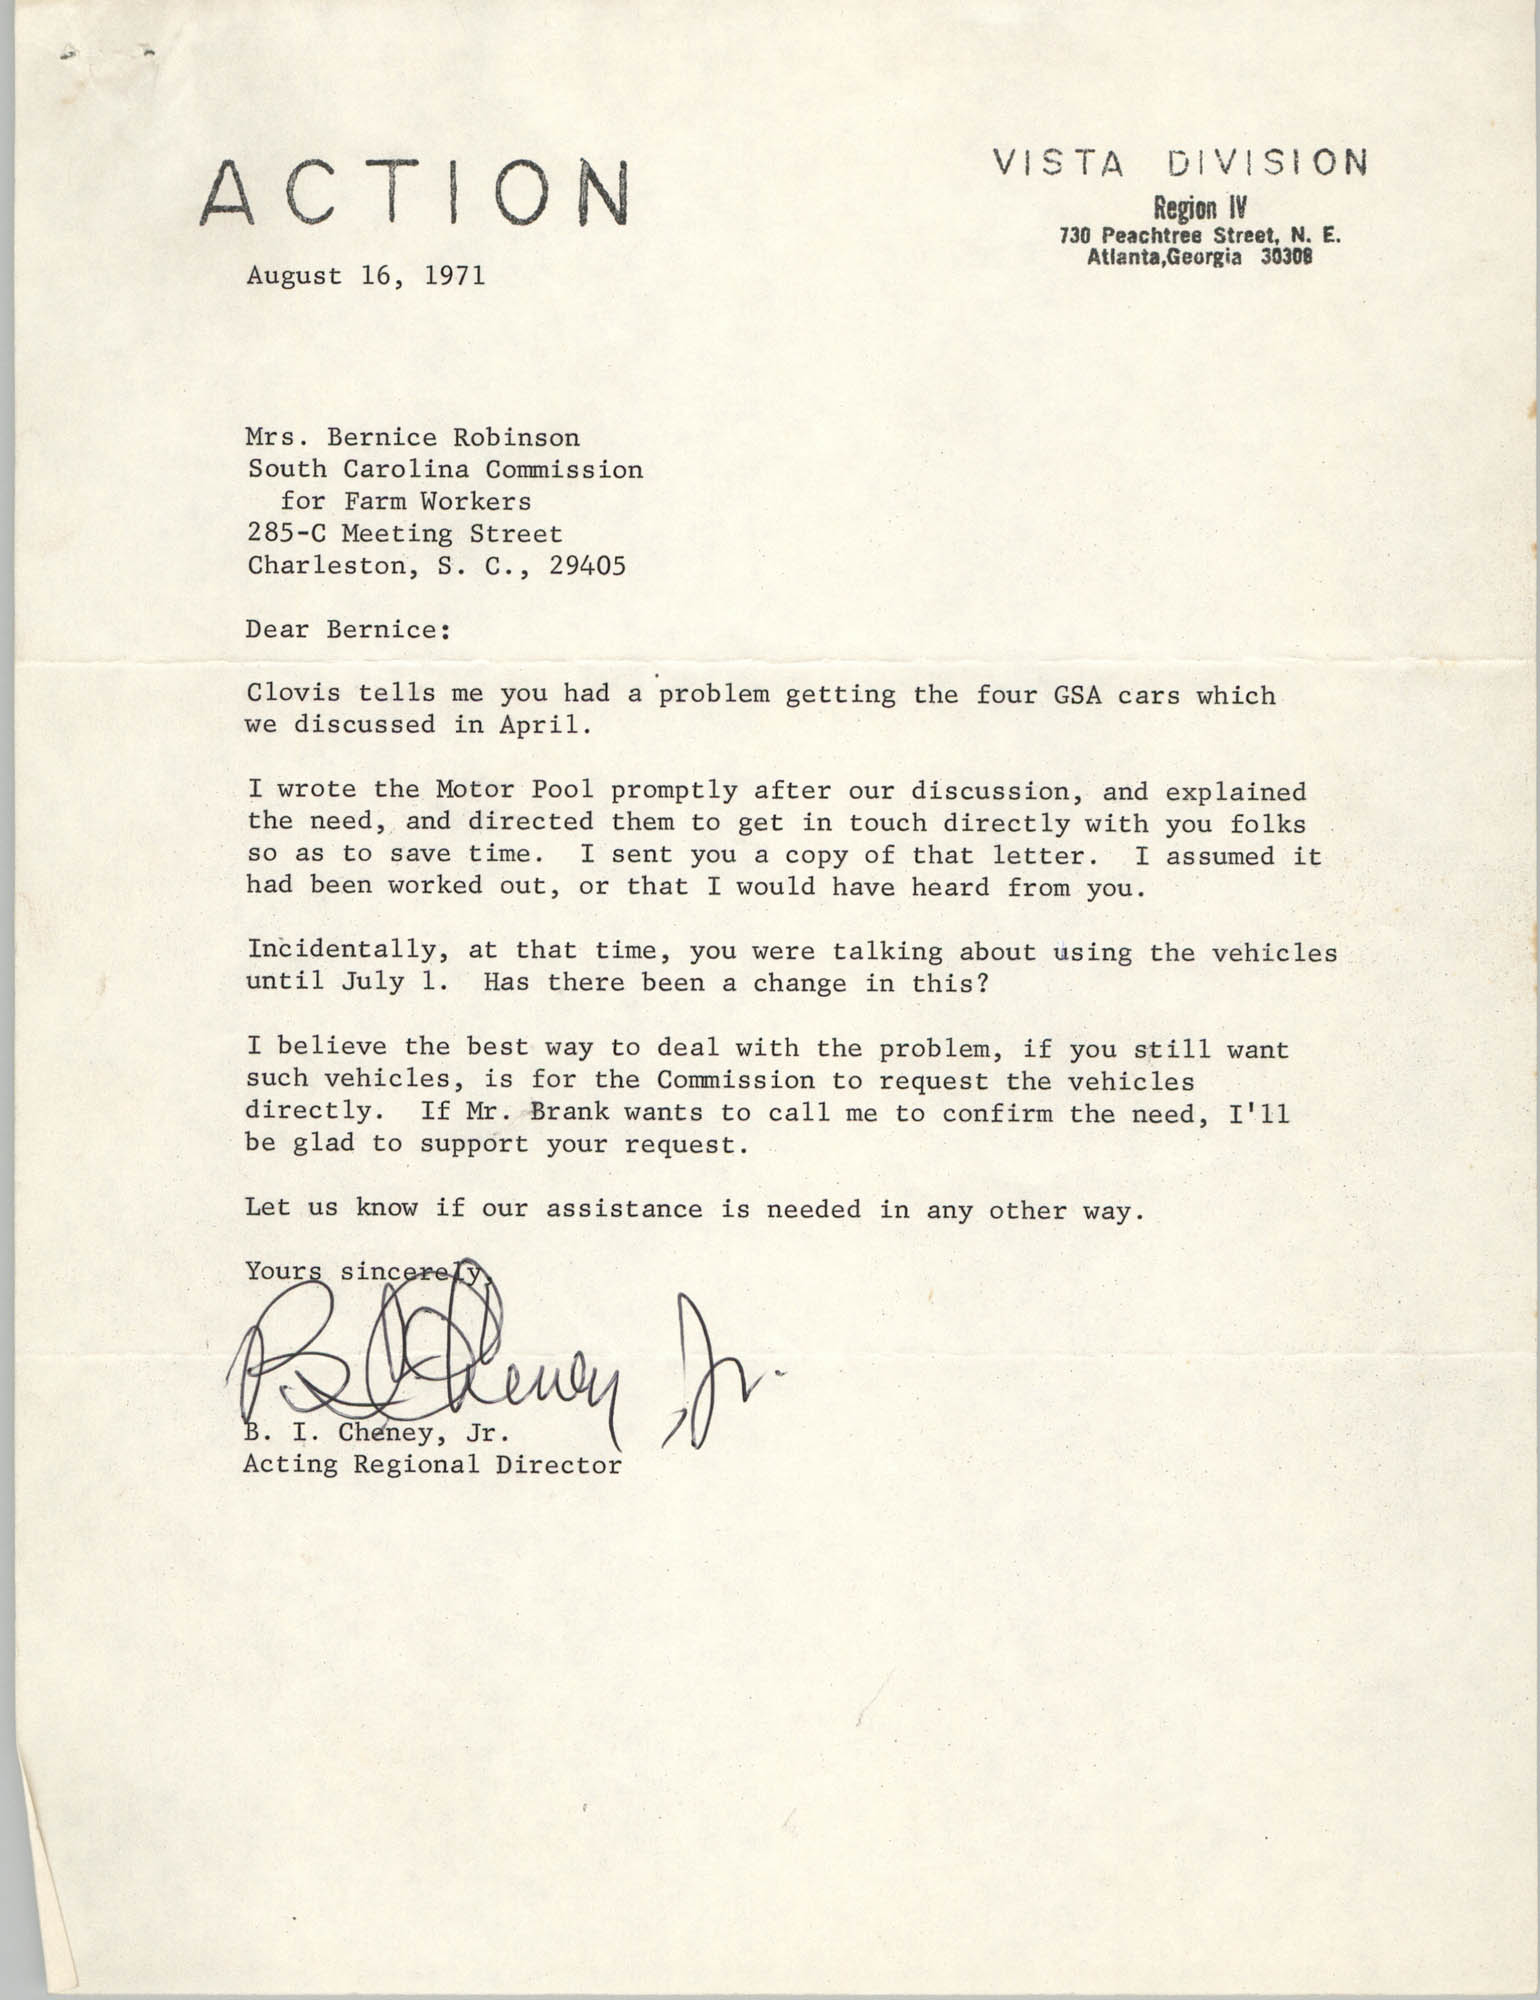 Letter from B. I. Cheney, Jr. to Bernice Robinson, August 16, 1971